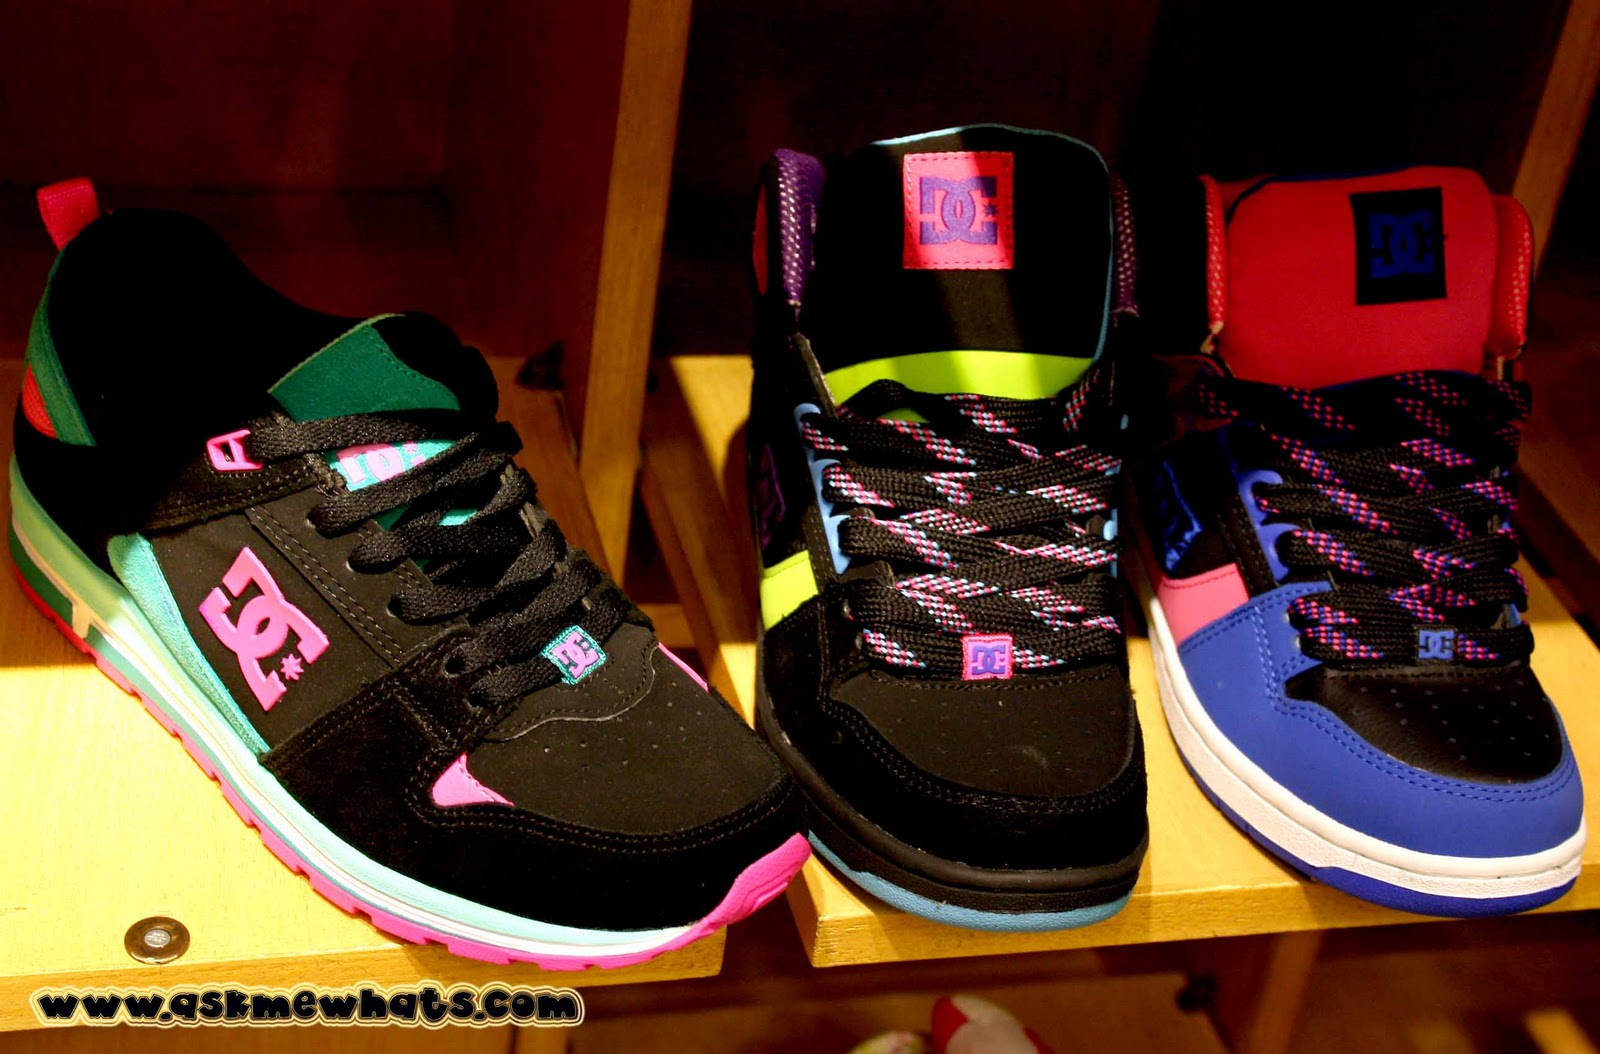 Skate shoes in cebu - Askmewhats Top Beauty Blogger Philippines Skincare Makeup Review Blog Philippines